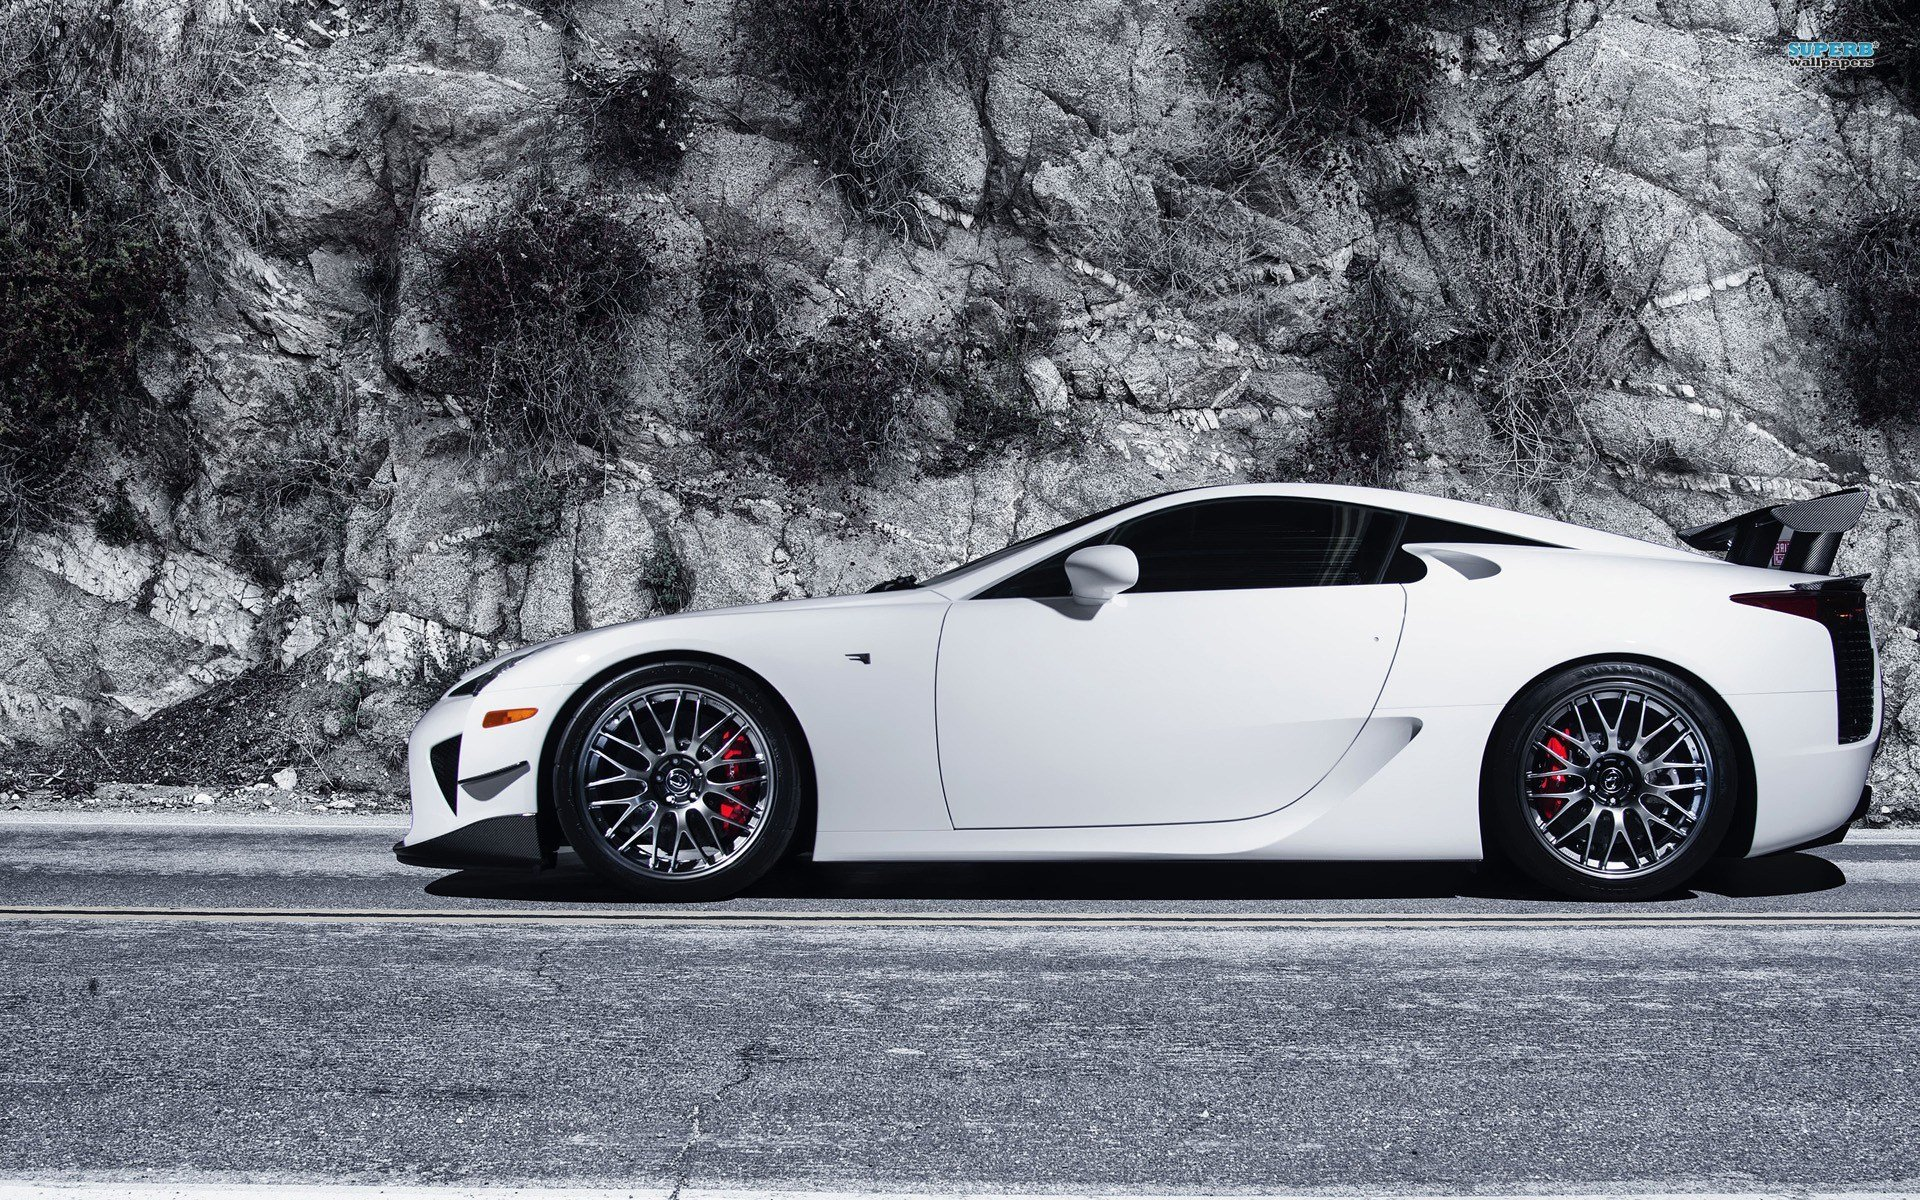 Latest Sport Cars Wallpaper Awesome Resolution Drd Hd Car Images Free Download